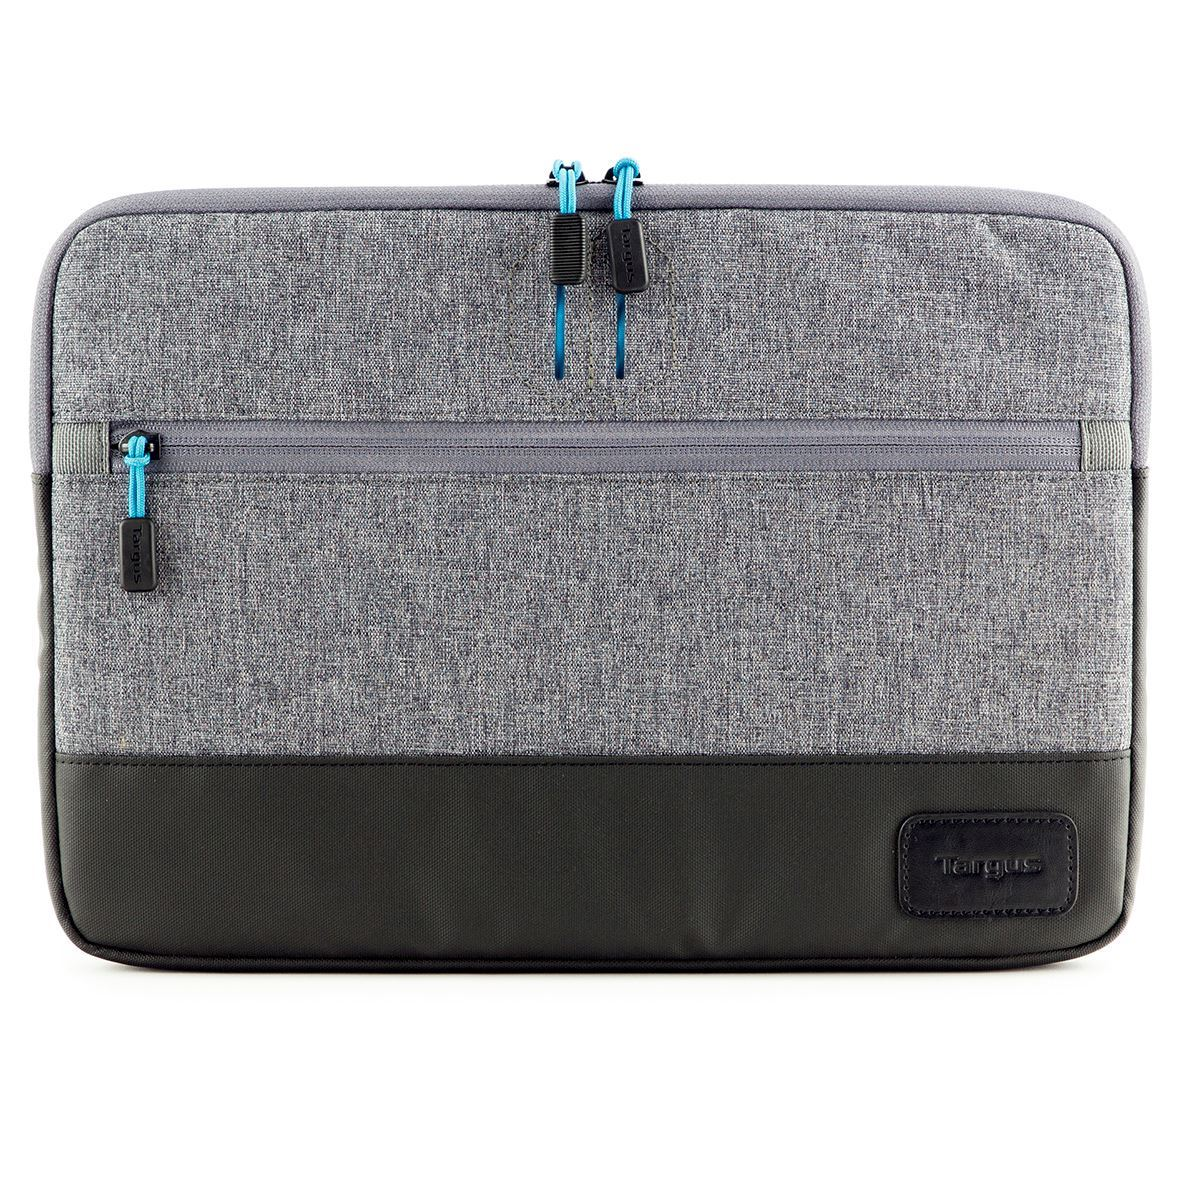 16 Laptop Carrying Cases